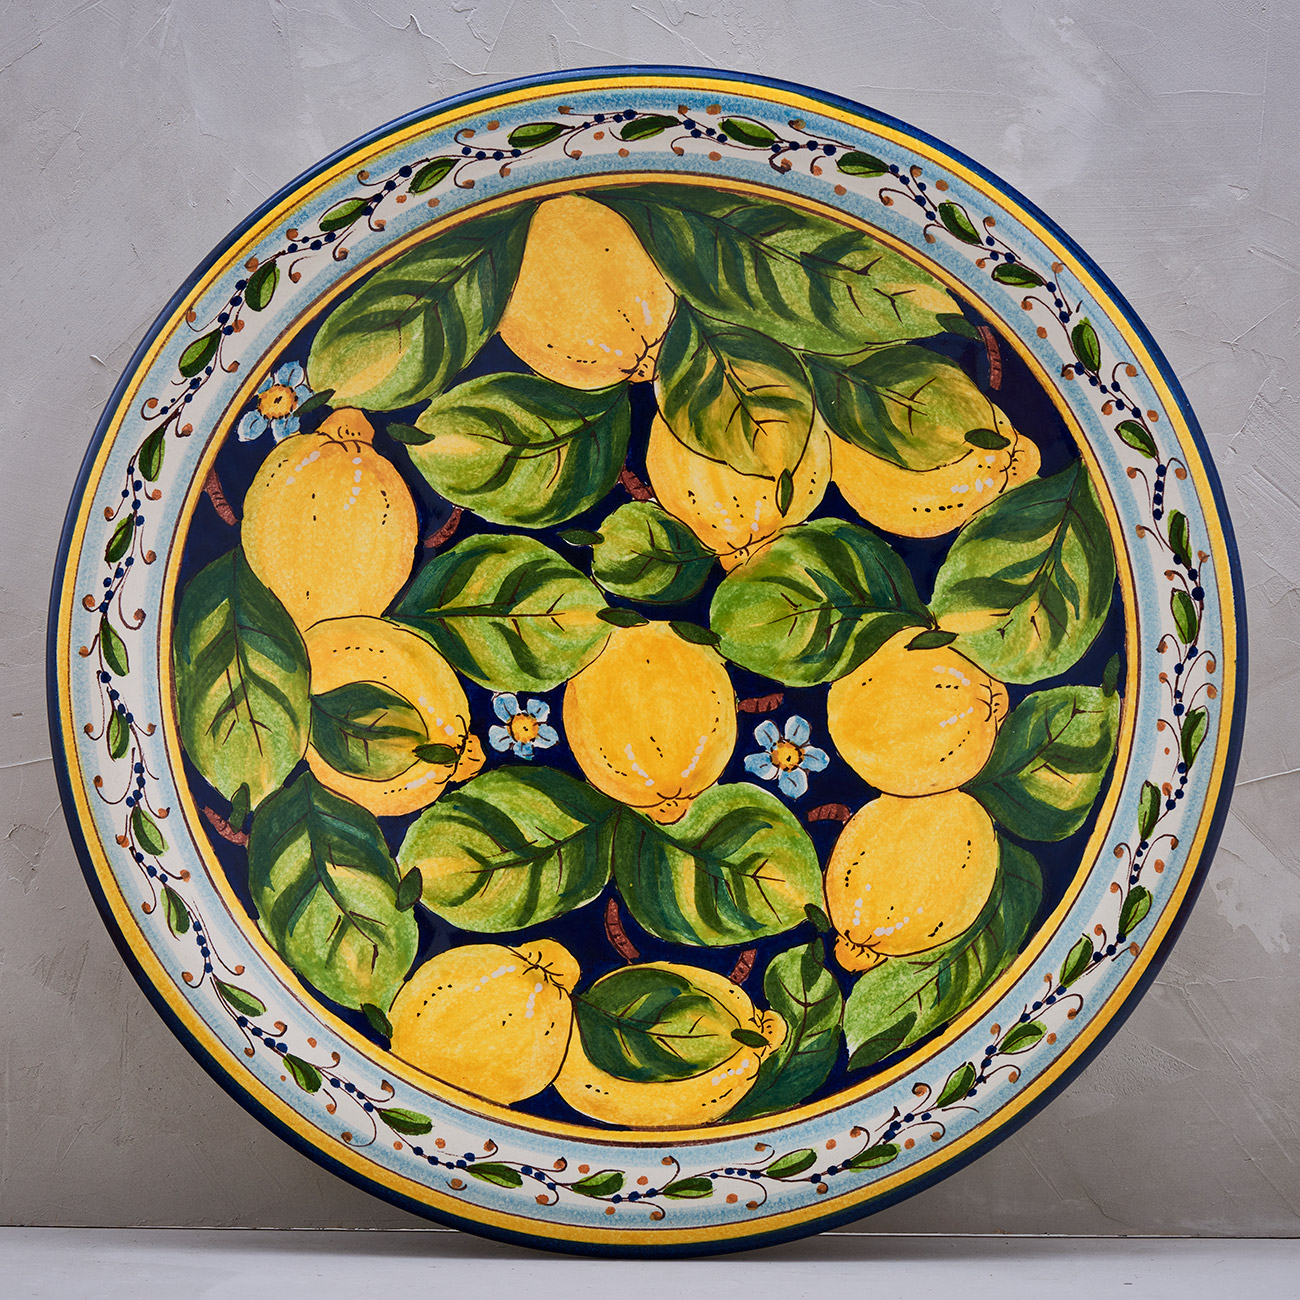 Lemon Plate Blue background - 52 cm 1